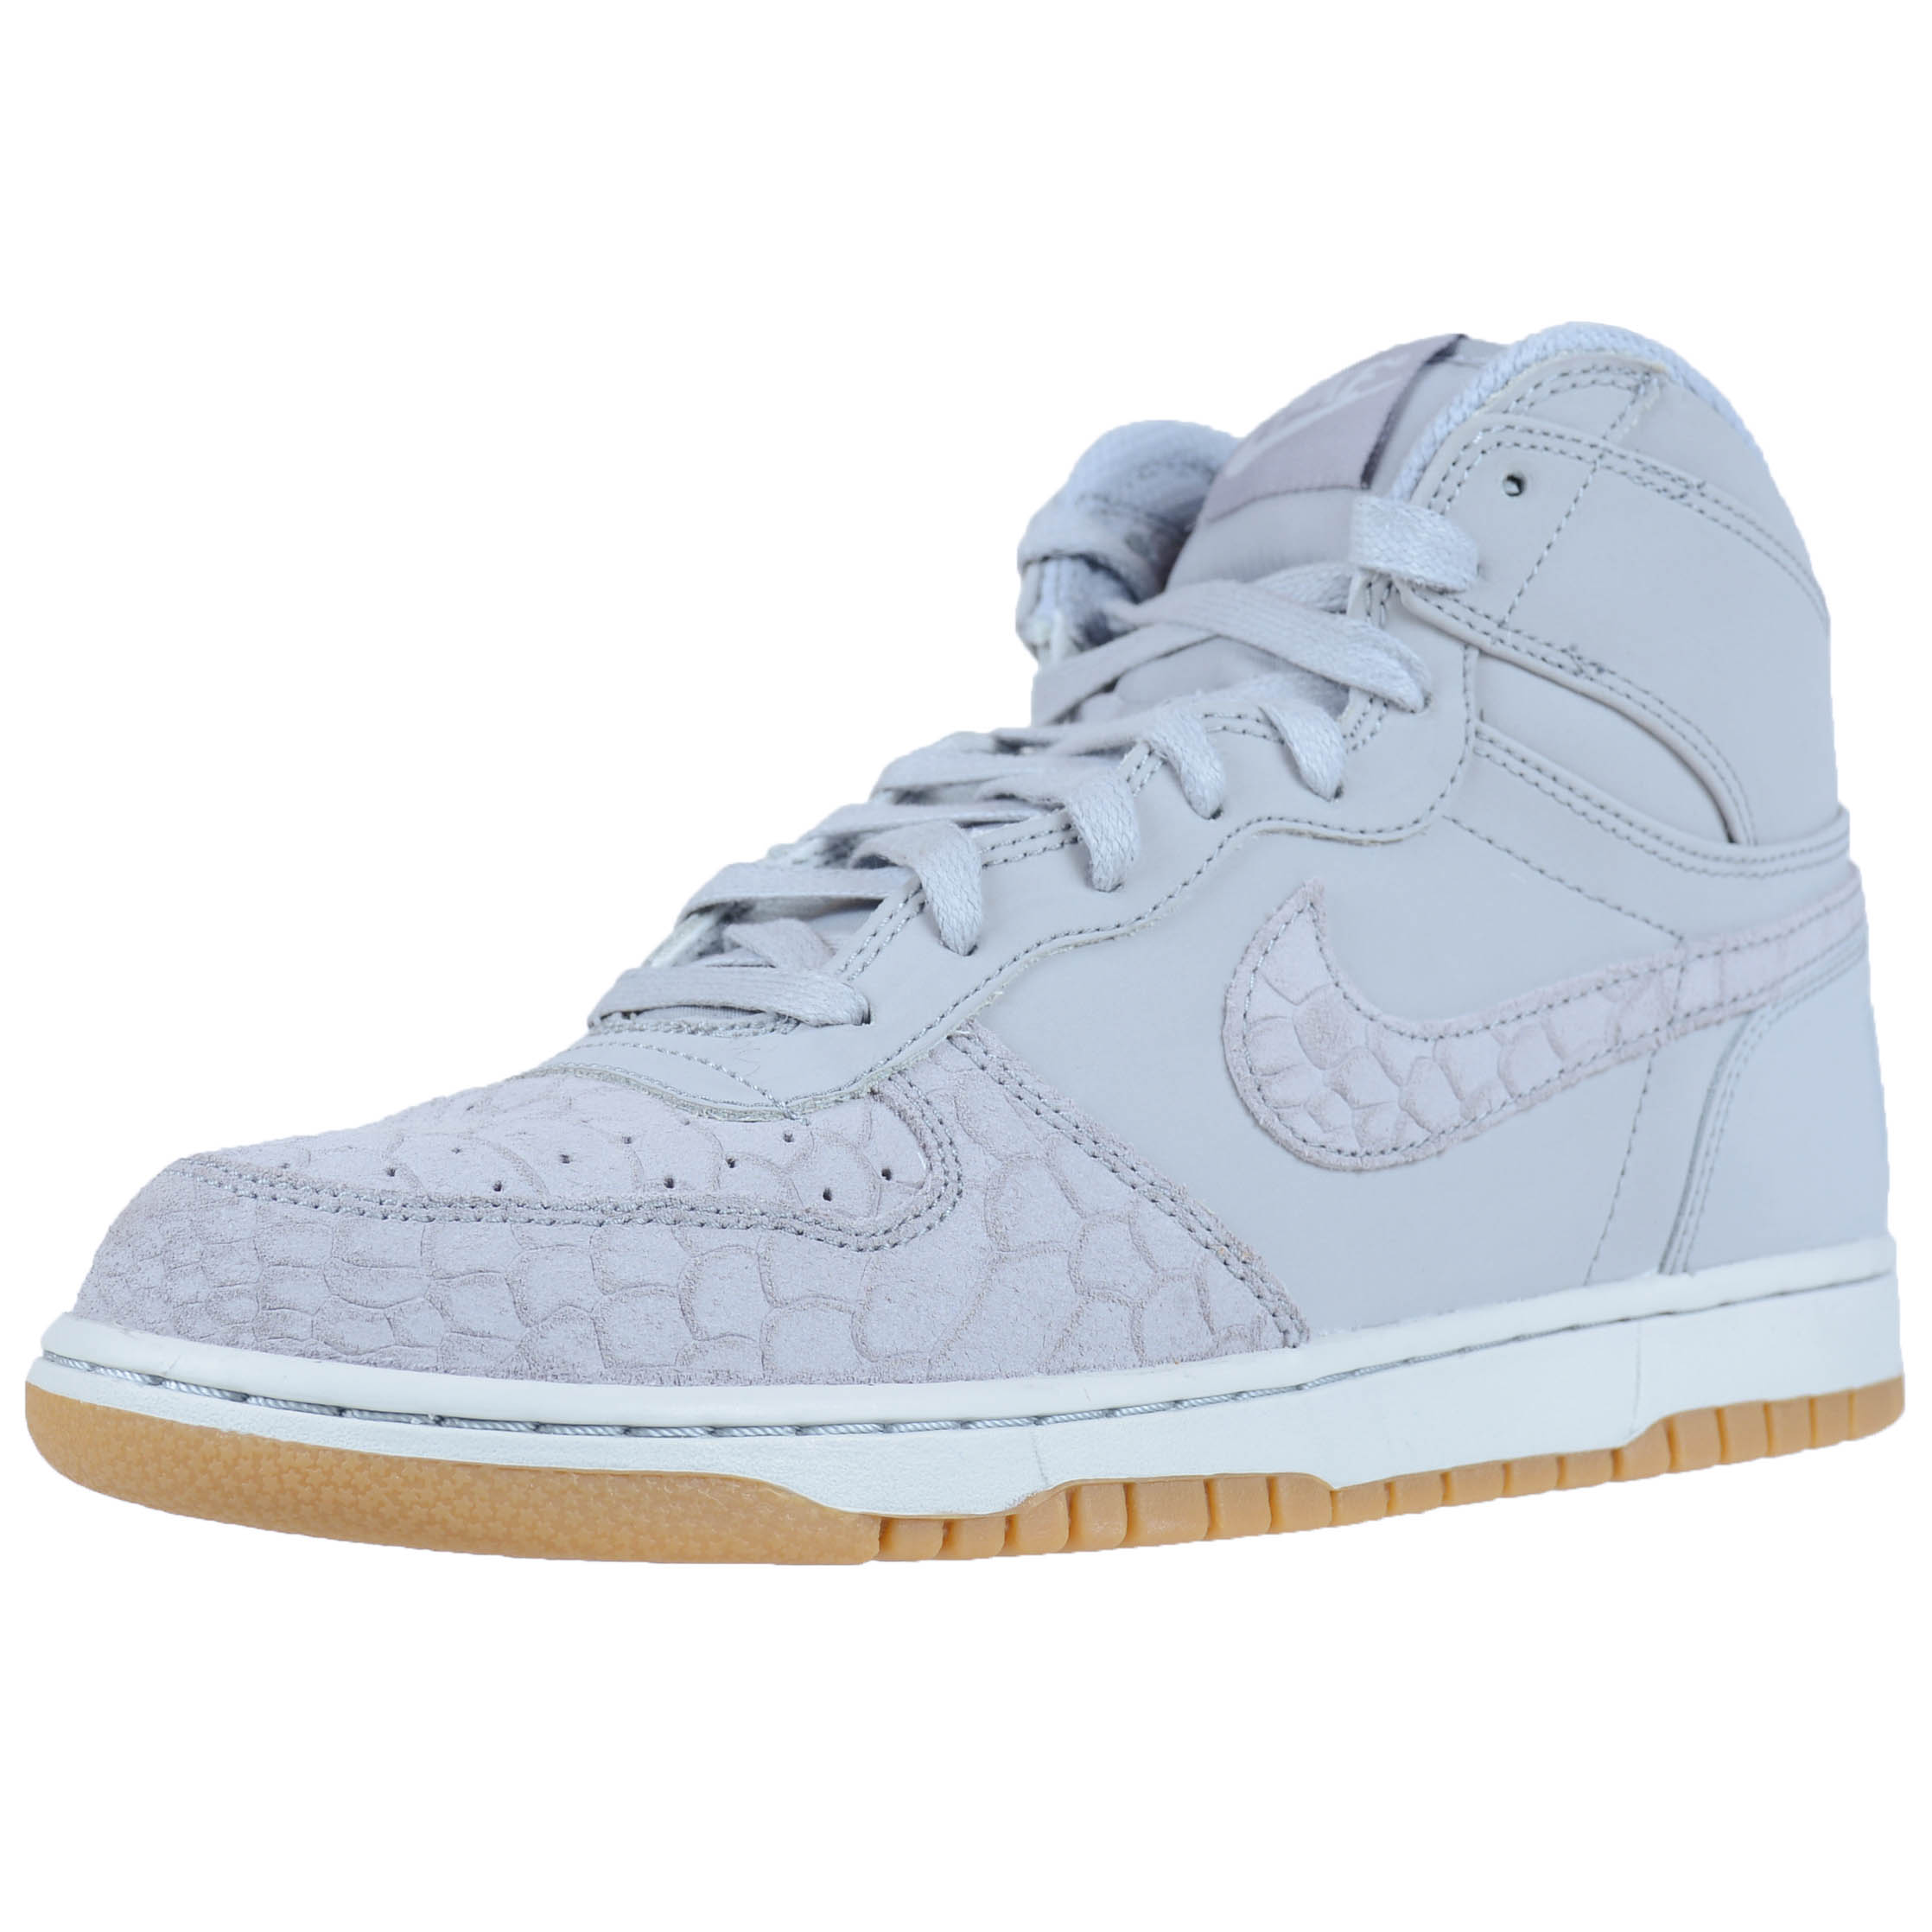 NIKE BIG NIKE HIGH LUX WOLF GREY PURE PLATINUM MENS CASUAL FASHION 854165 002 by